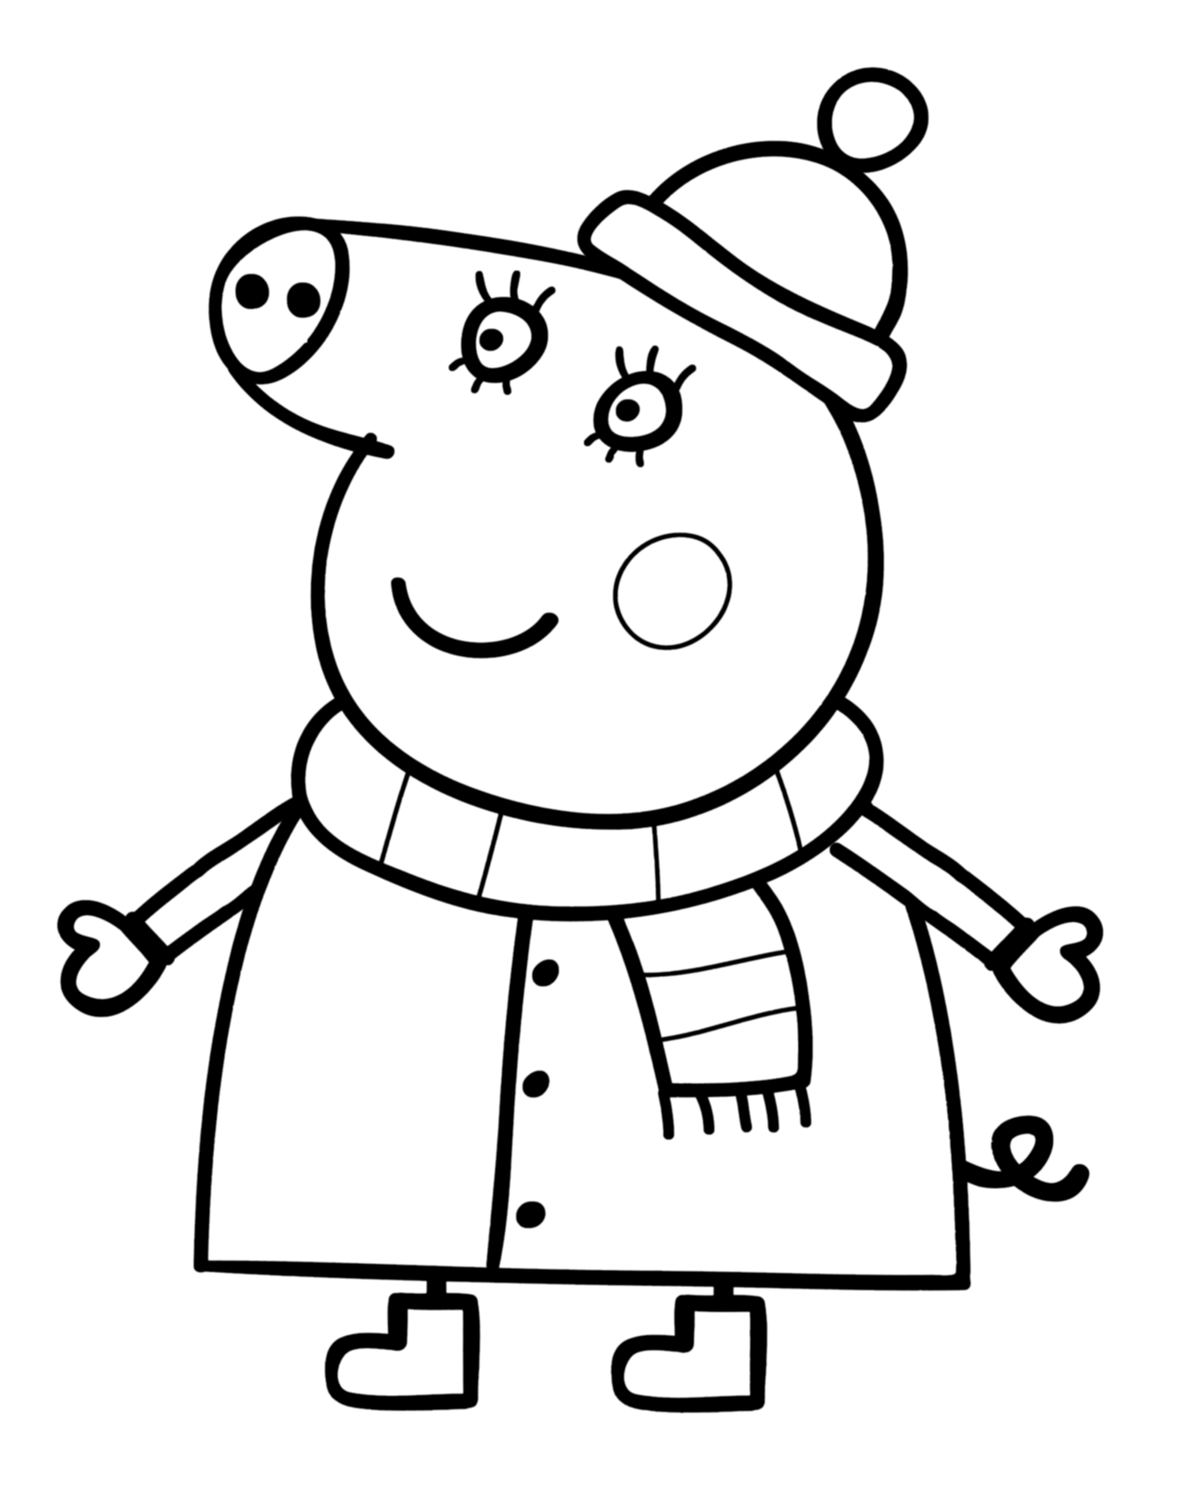 pepa pig coloring pages peppa pig39s royal family coloring page free printable pig pepa pages coloring